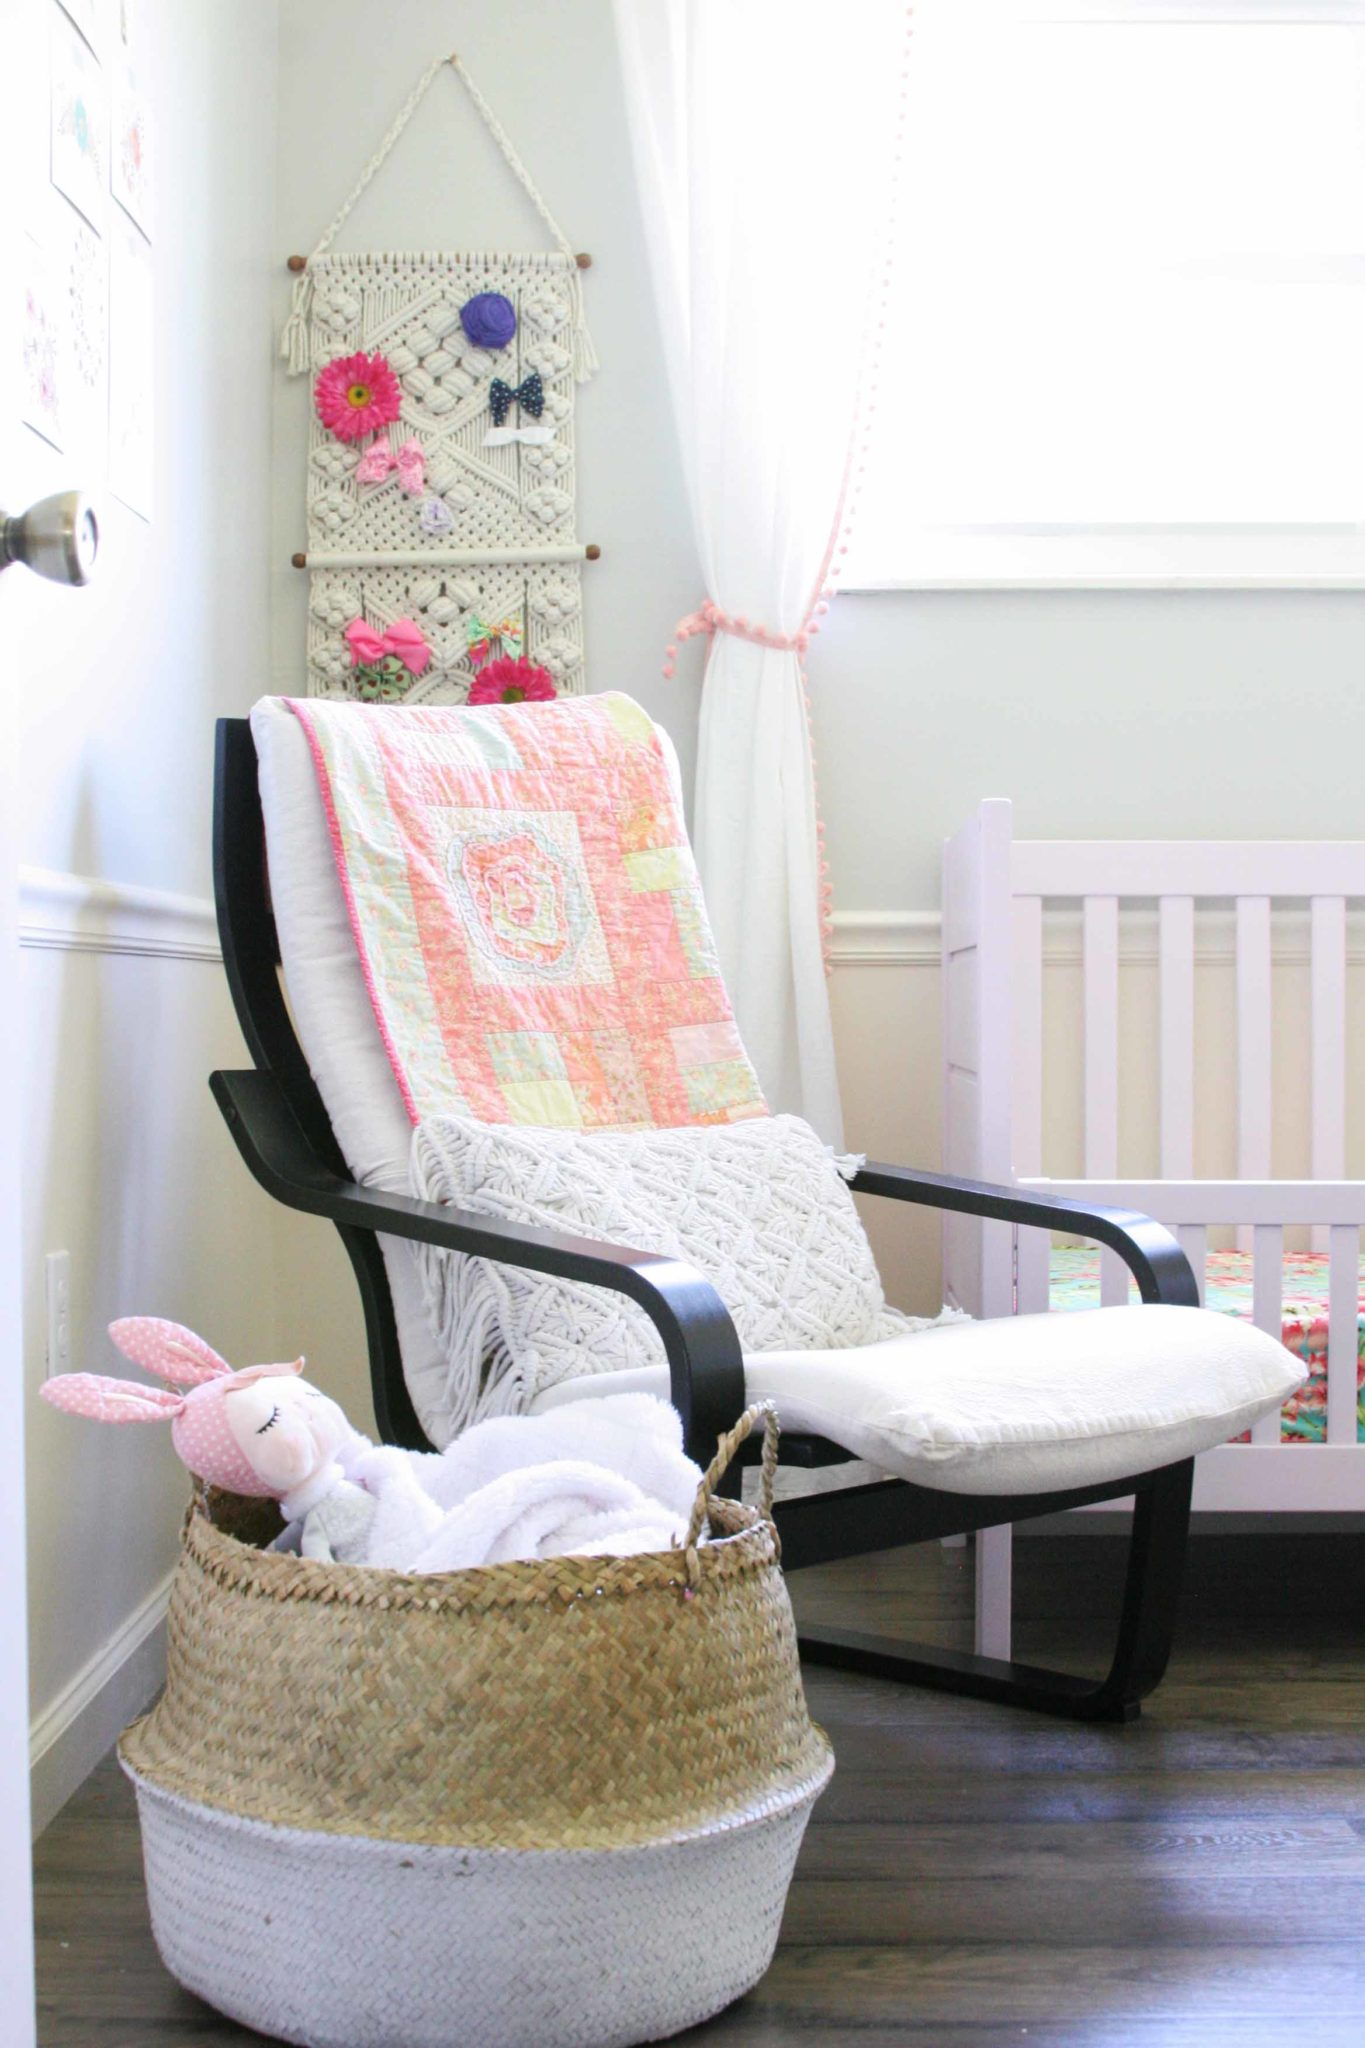 Amelia S Room Toddler Bedroom: Modern Bohemian Bedroom For Baby Girl